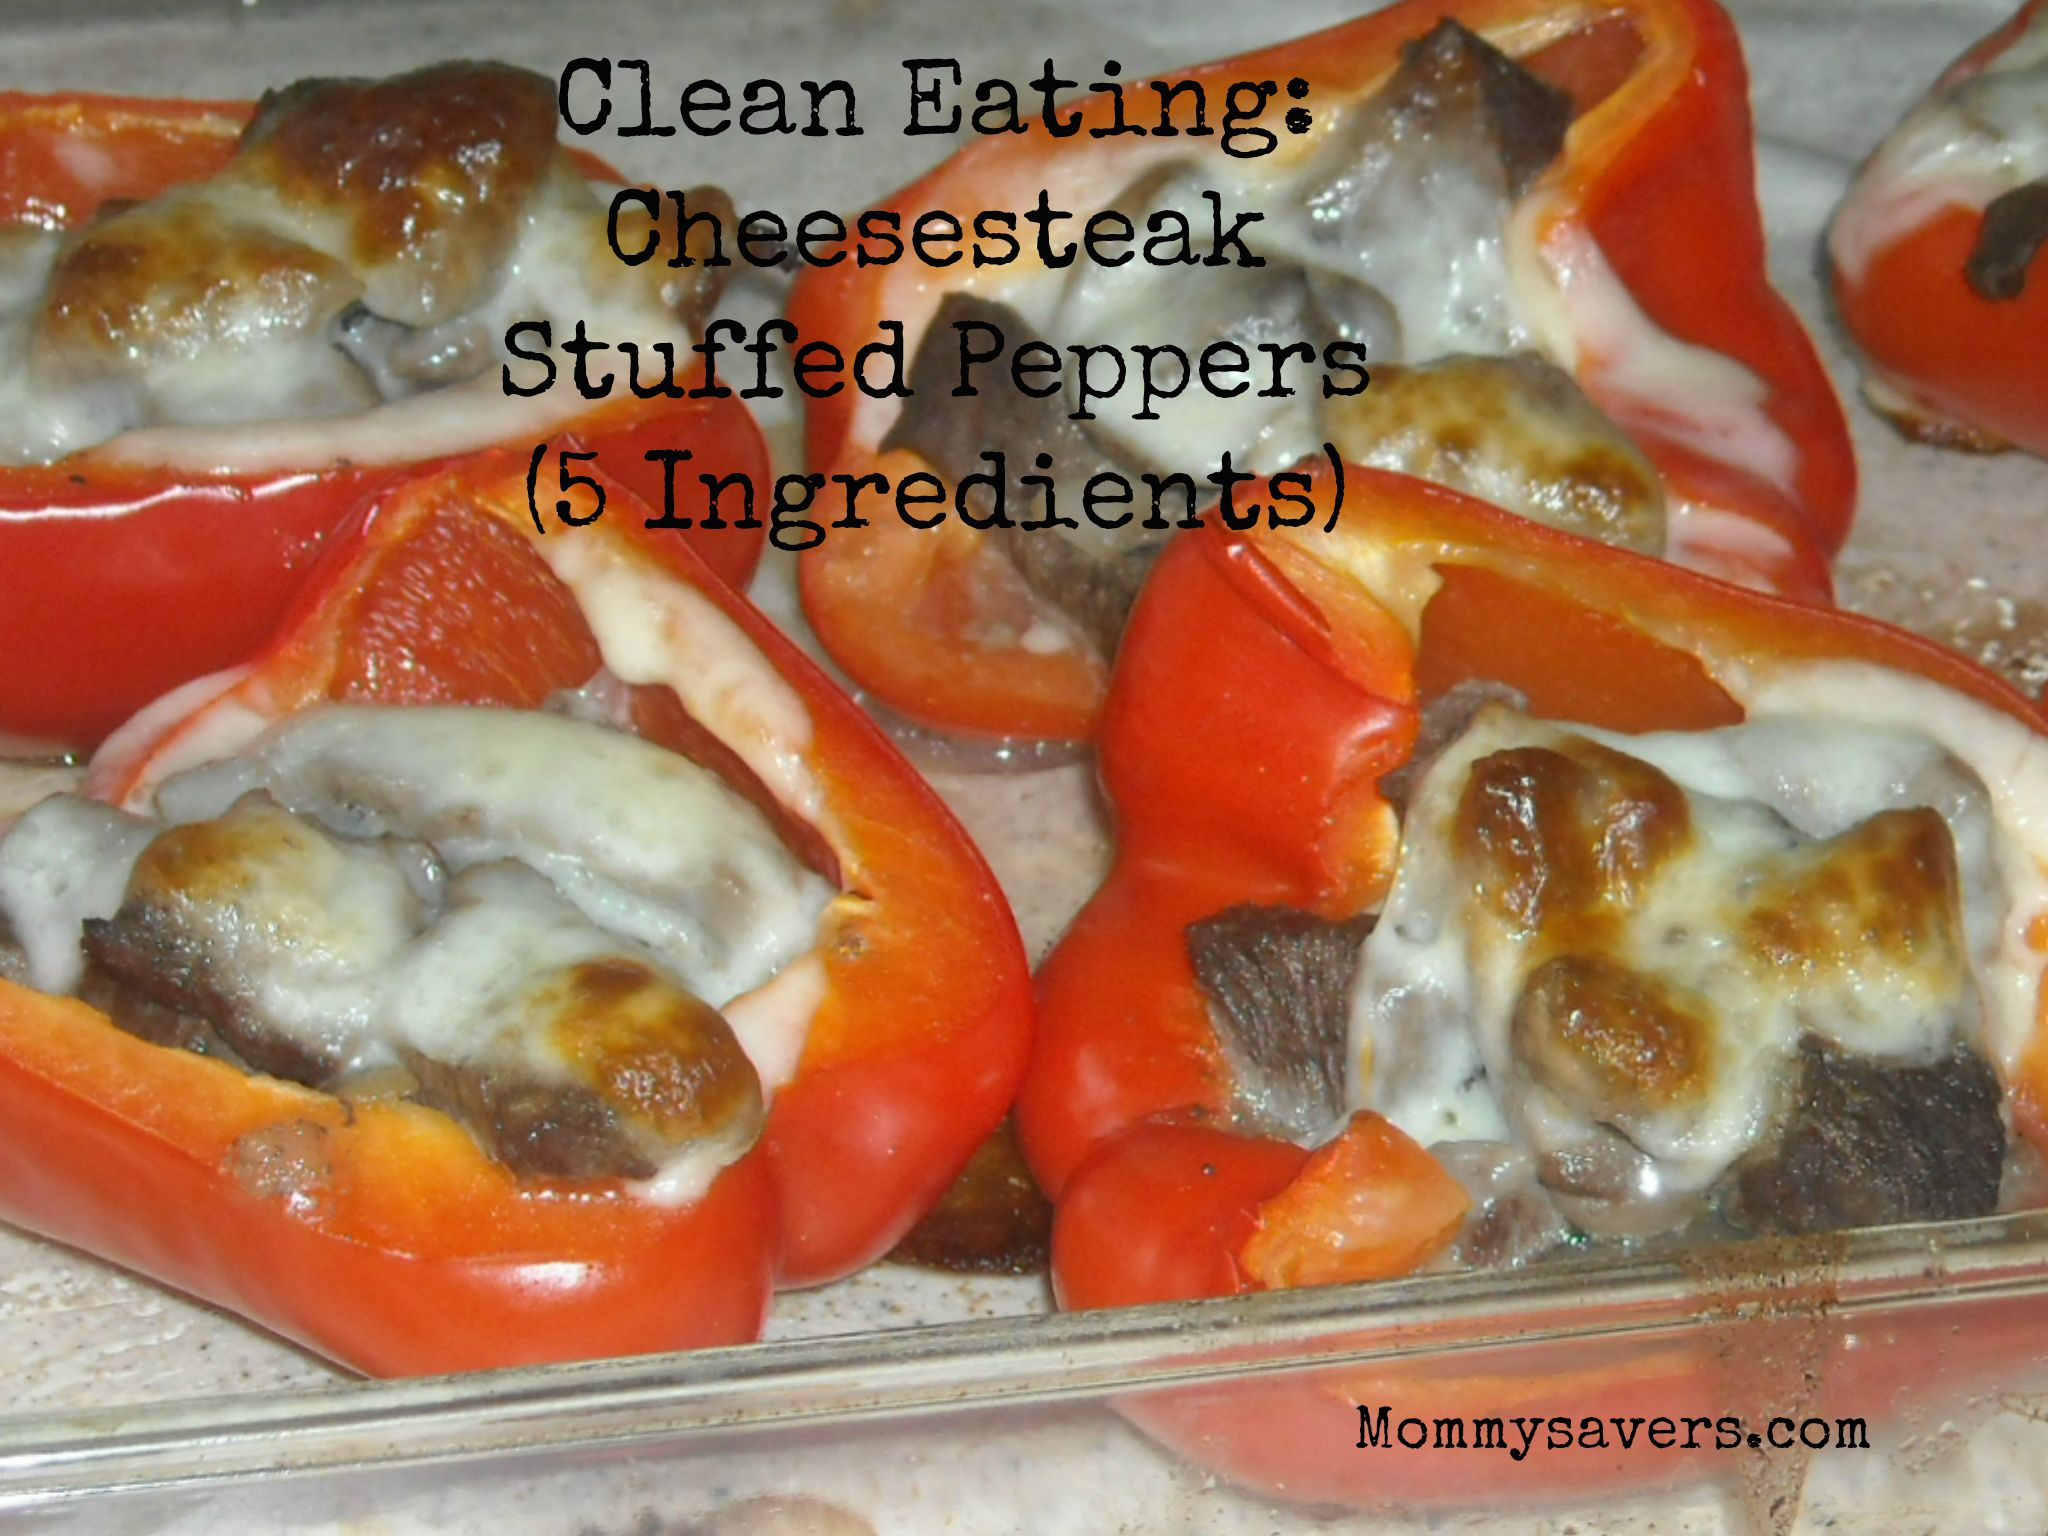 Clean Eating Cheesesteak Stuffed Peppers